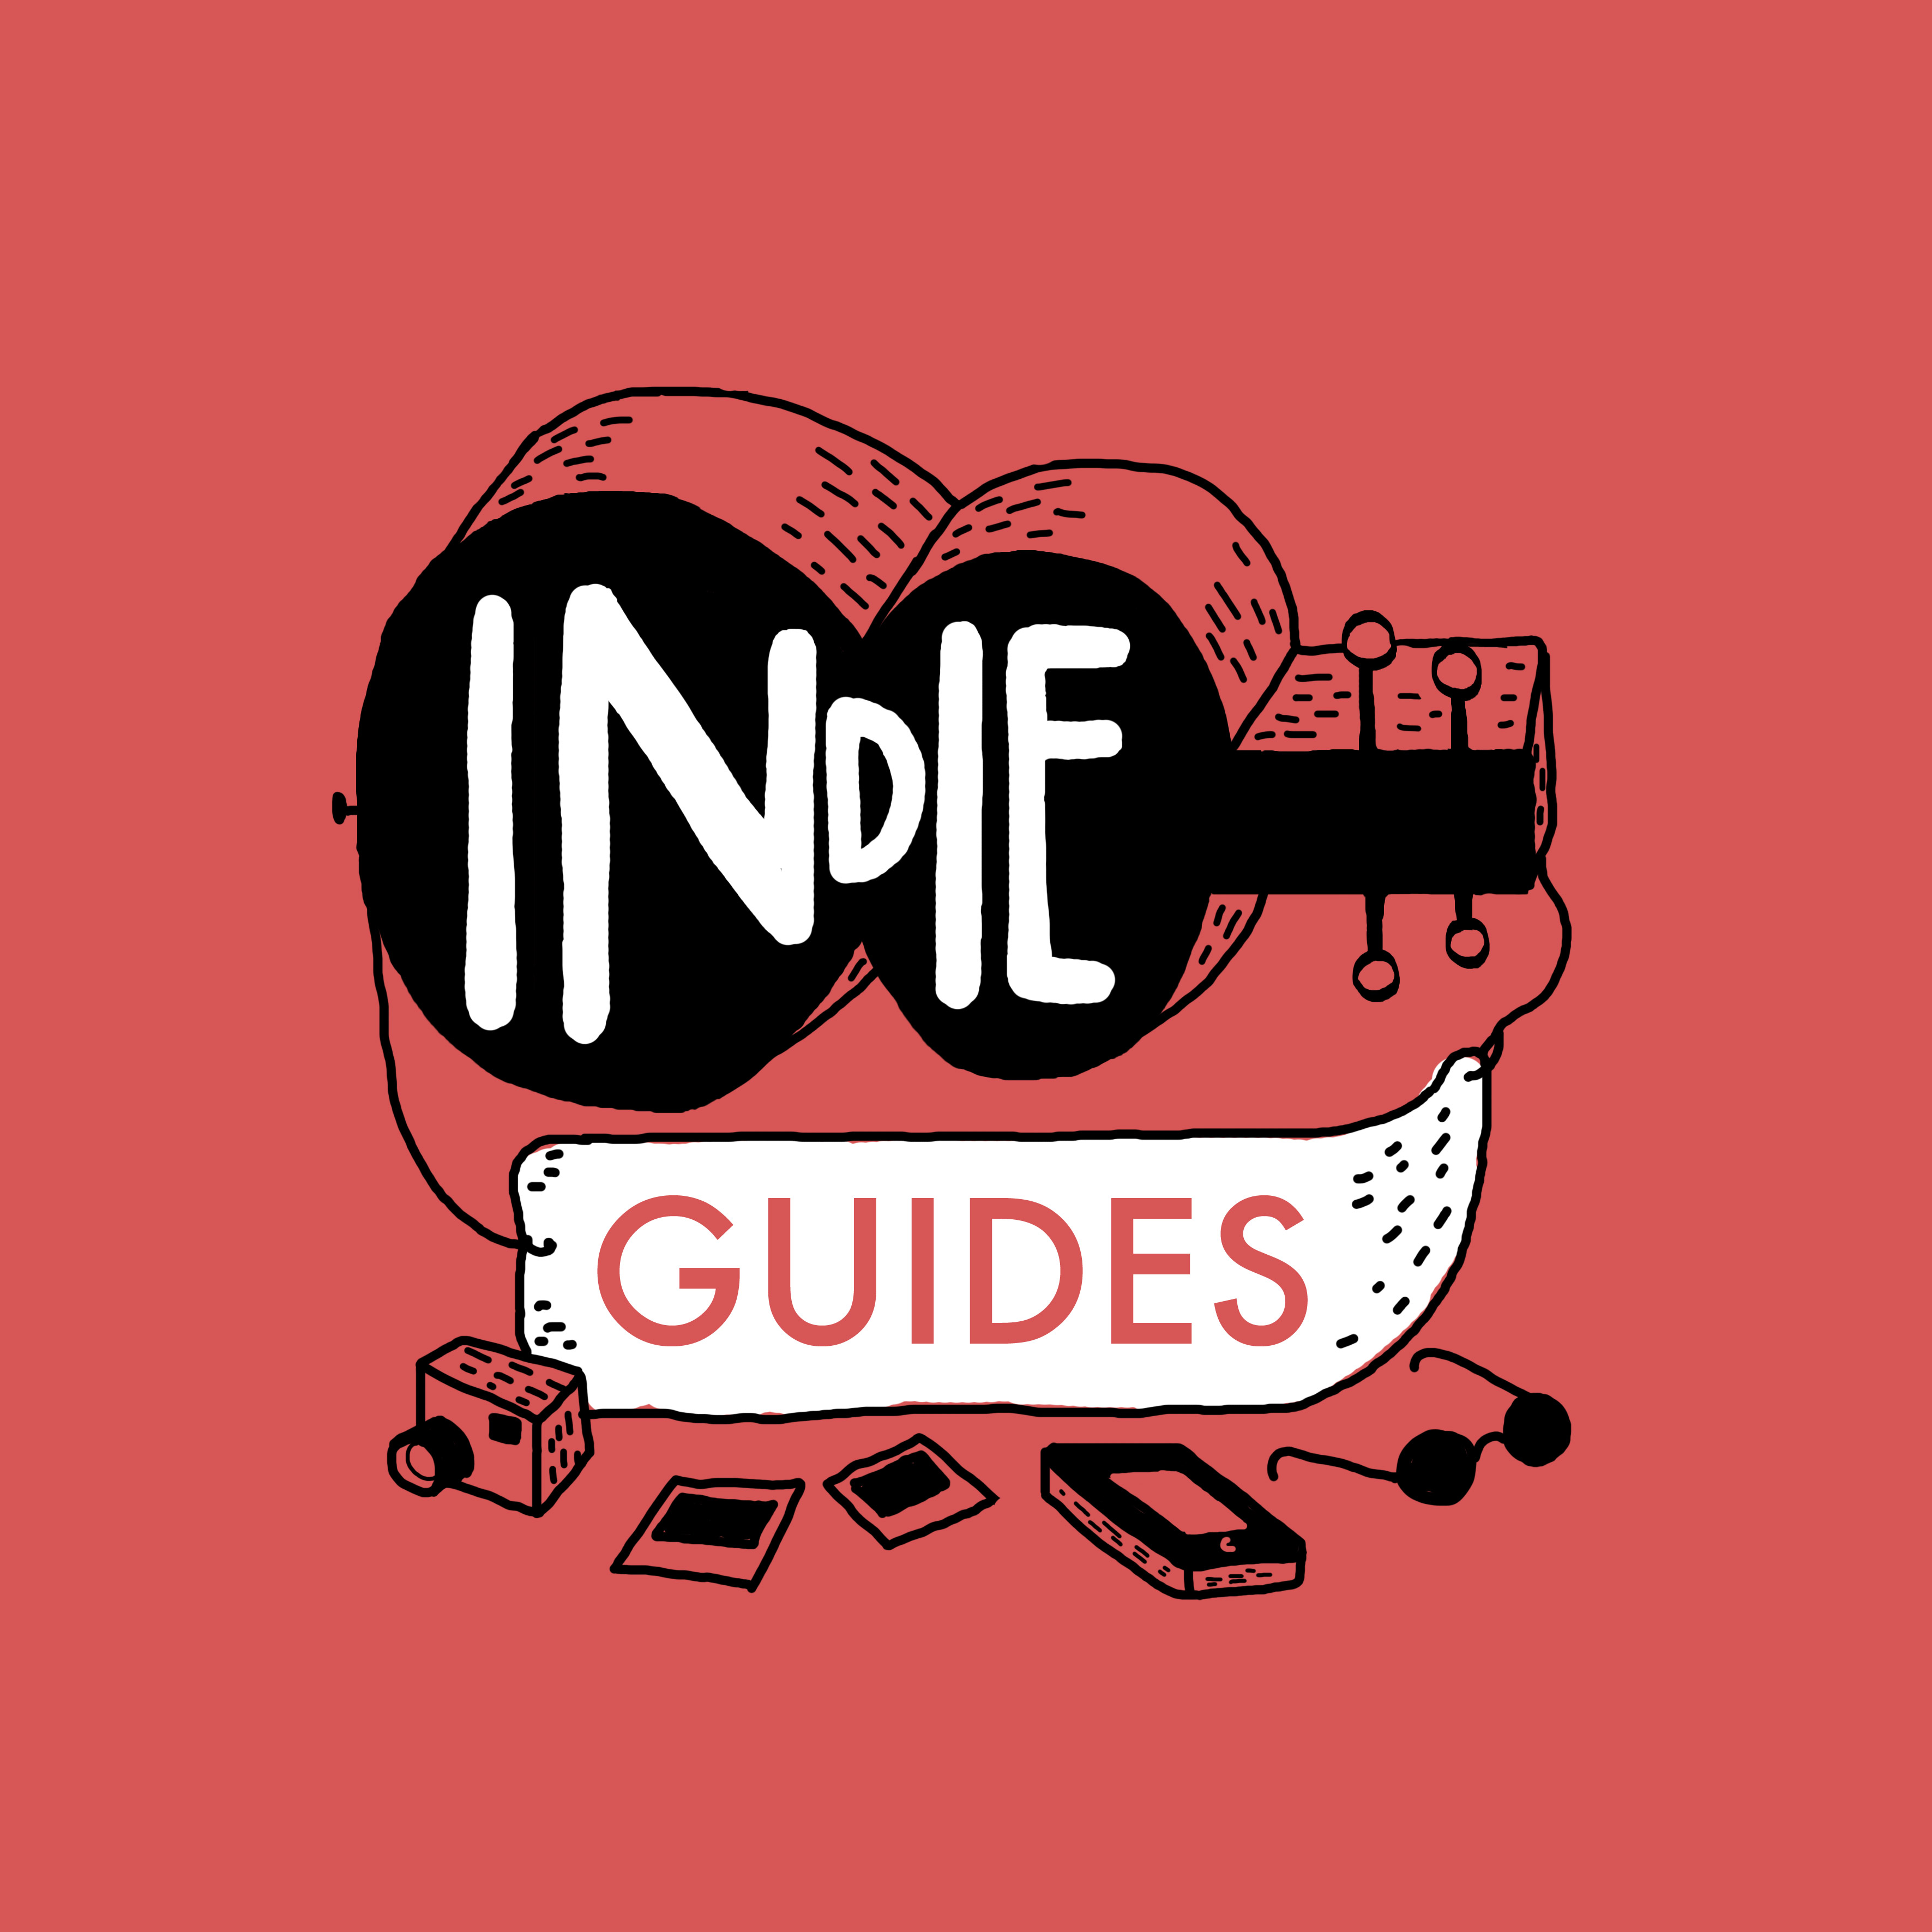 logo-indie-guides-red